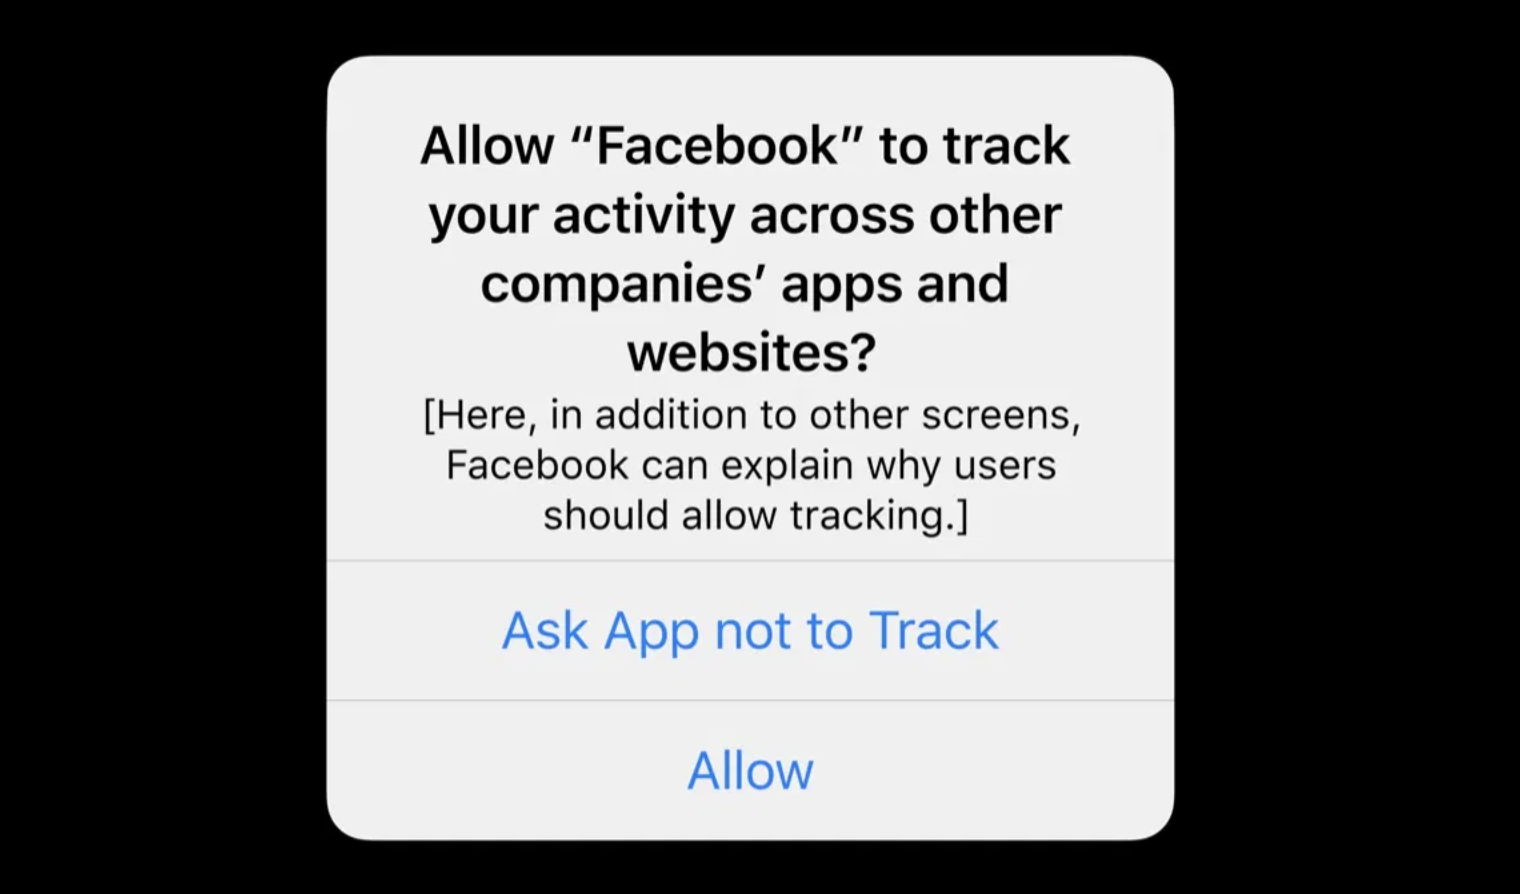 https://9to5mac.com/2020/12/23/ios-14-tracking-prompt-rollout/